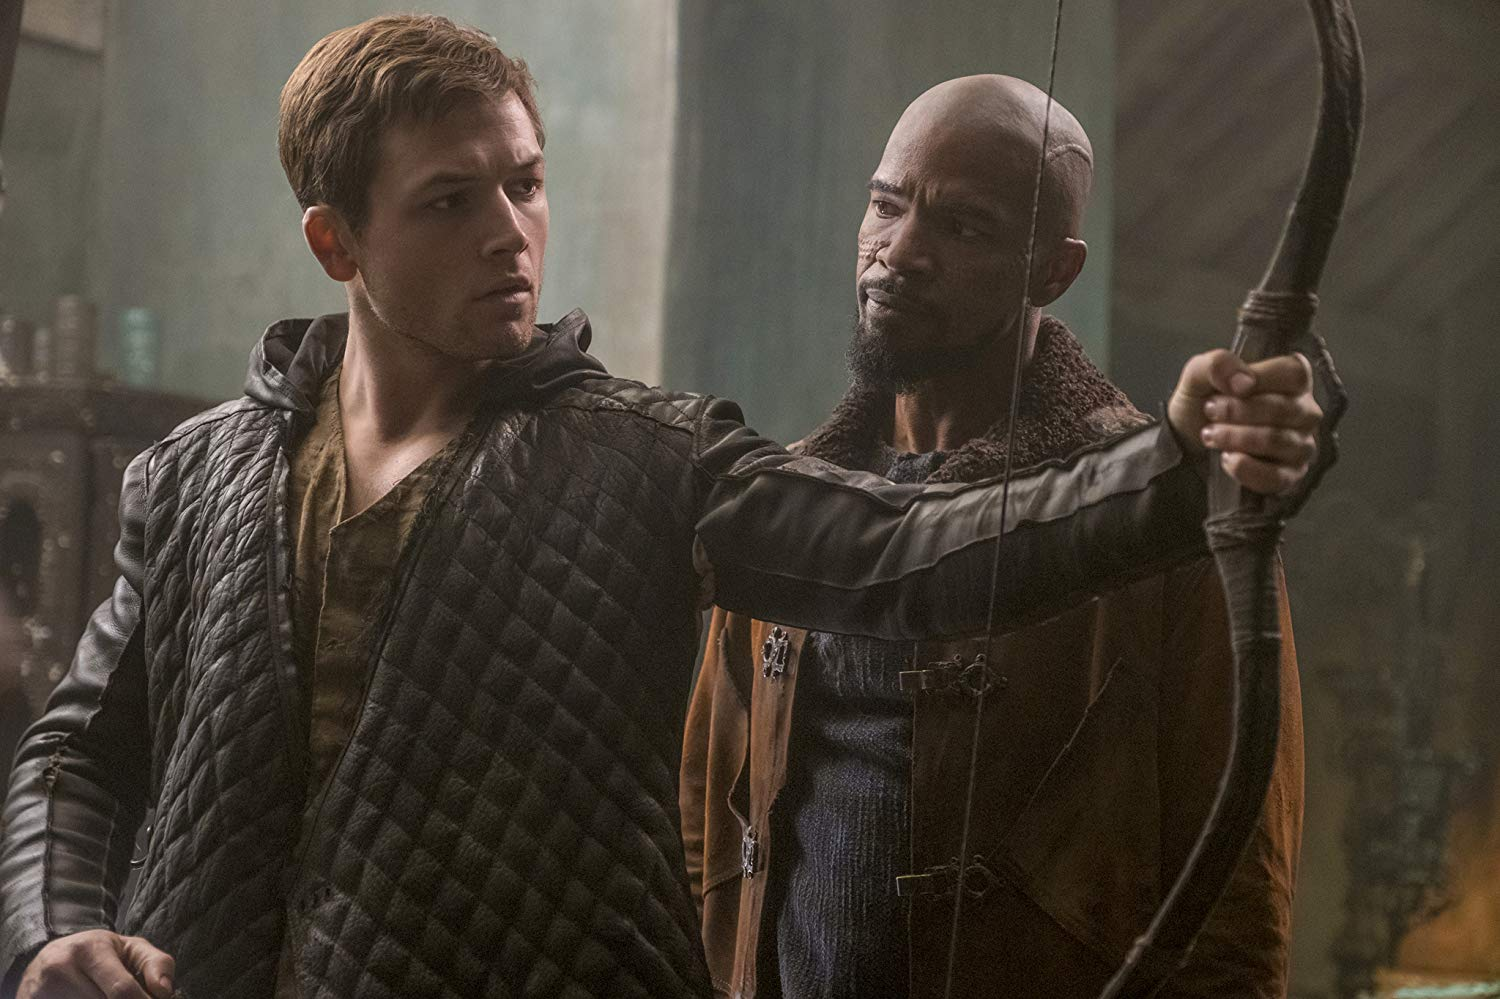 Robin Hood film review; action, adventure; Taron Egerton, Jamie Foxx